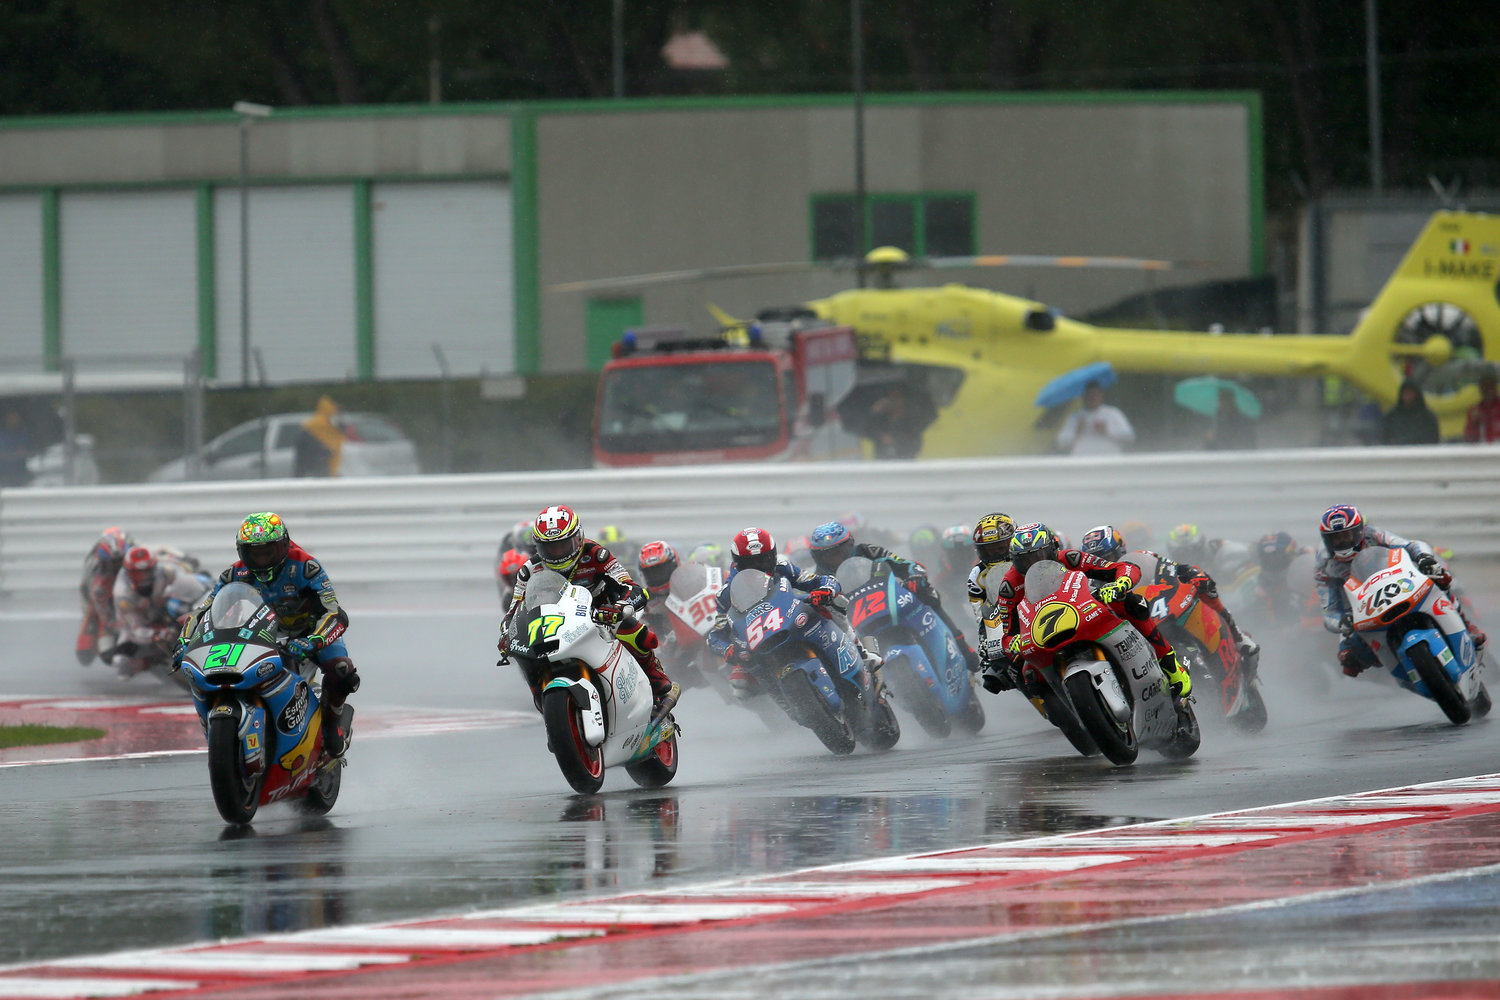 The Forward Racing Team leaves Misano without well-deserved laurels